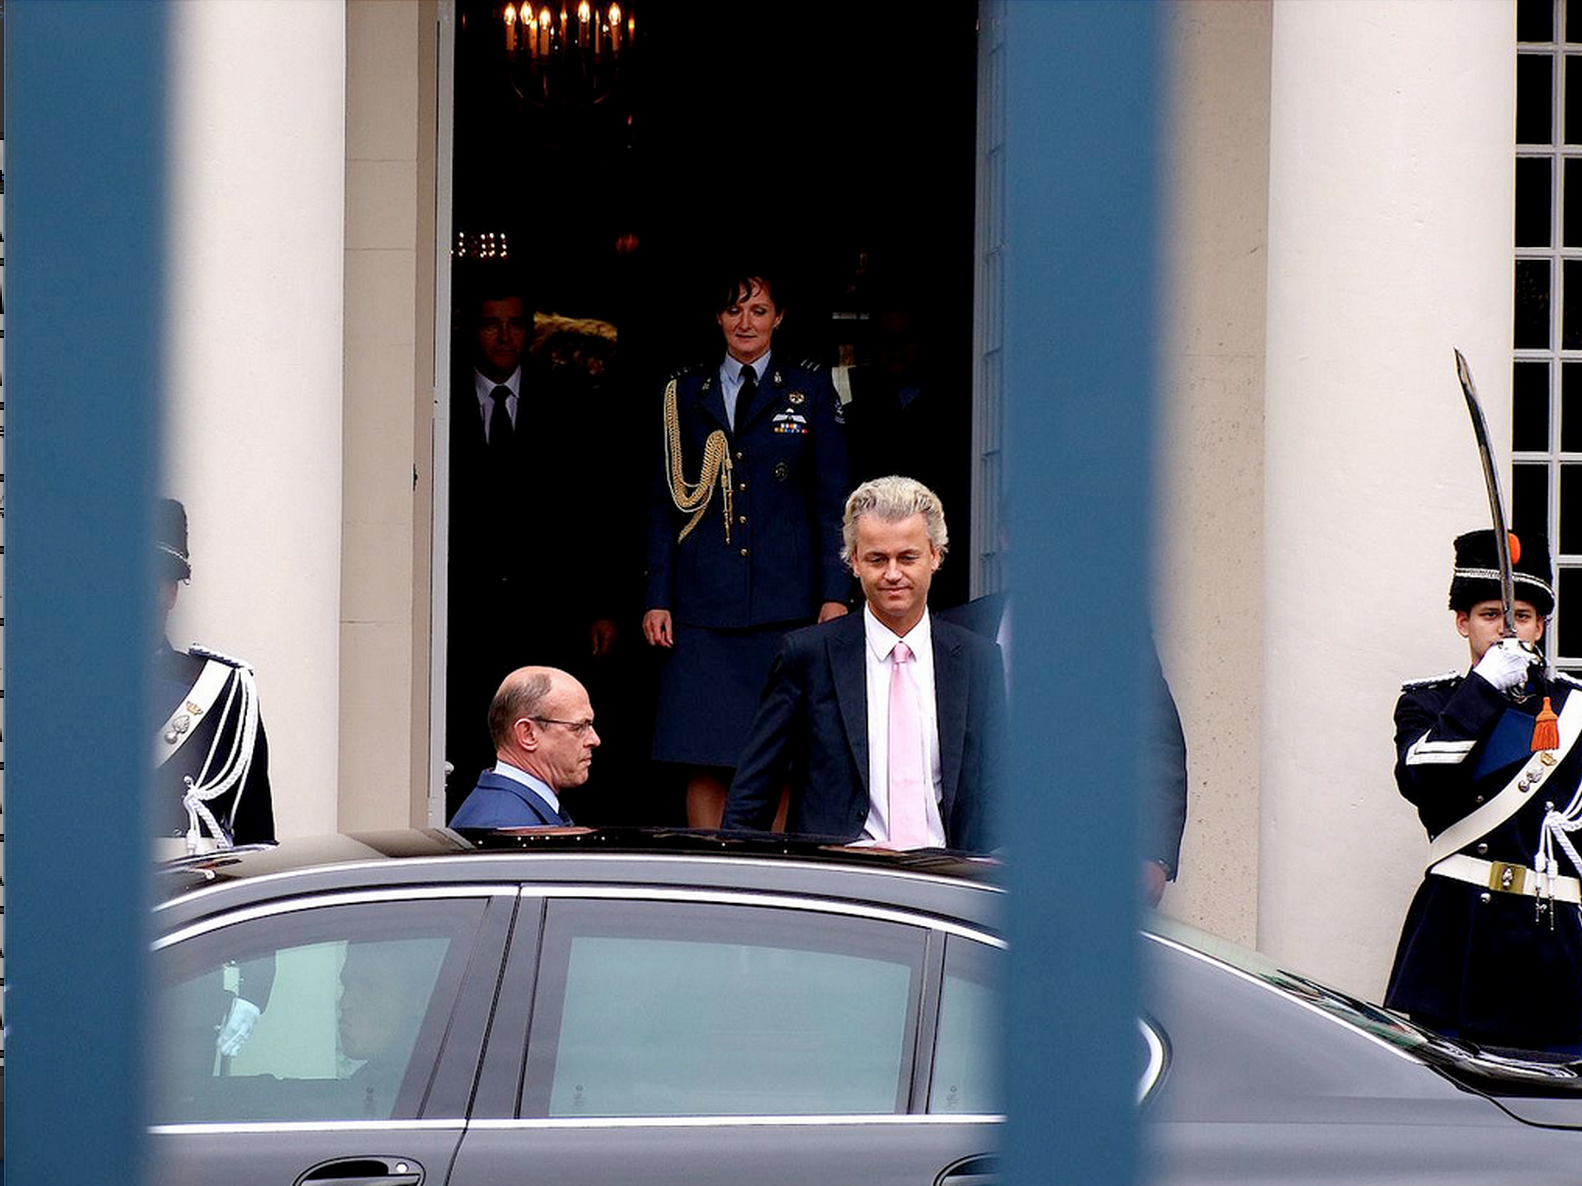 Geert Wilders Flouts EU Rules, Will Attempt to Sit in Dutch and European Parliaments